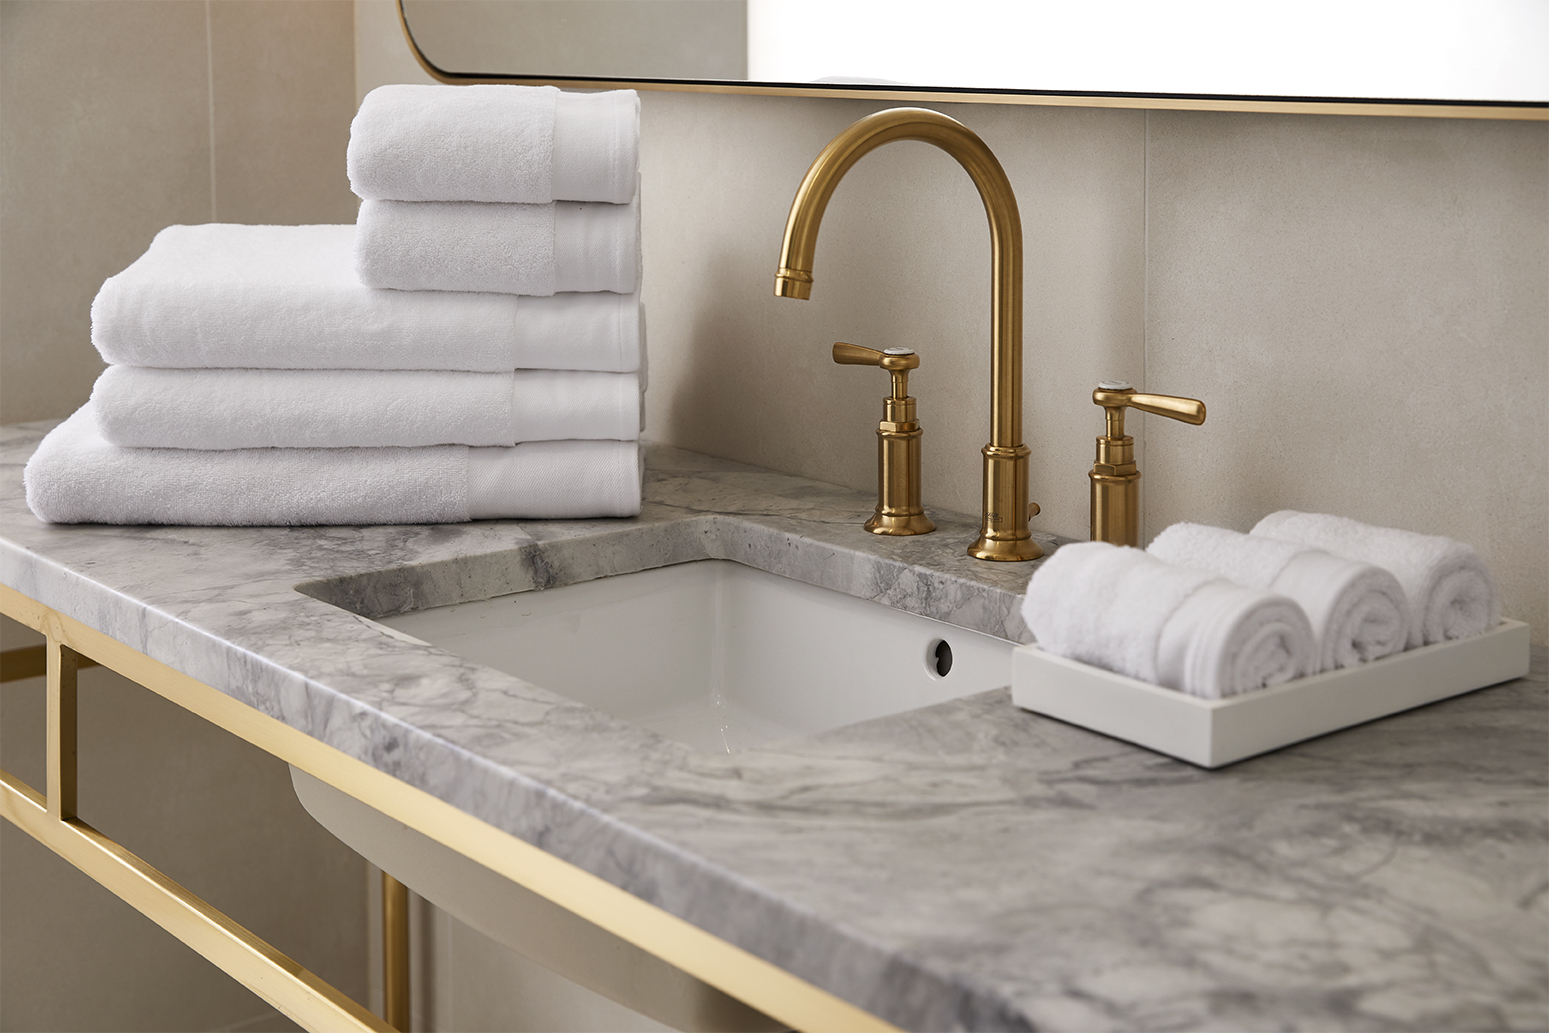 Revival_New_York_Luxury_Bath_Linens_York_Collection_Products_Hospitality_Hotels